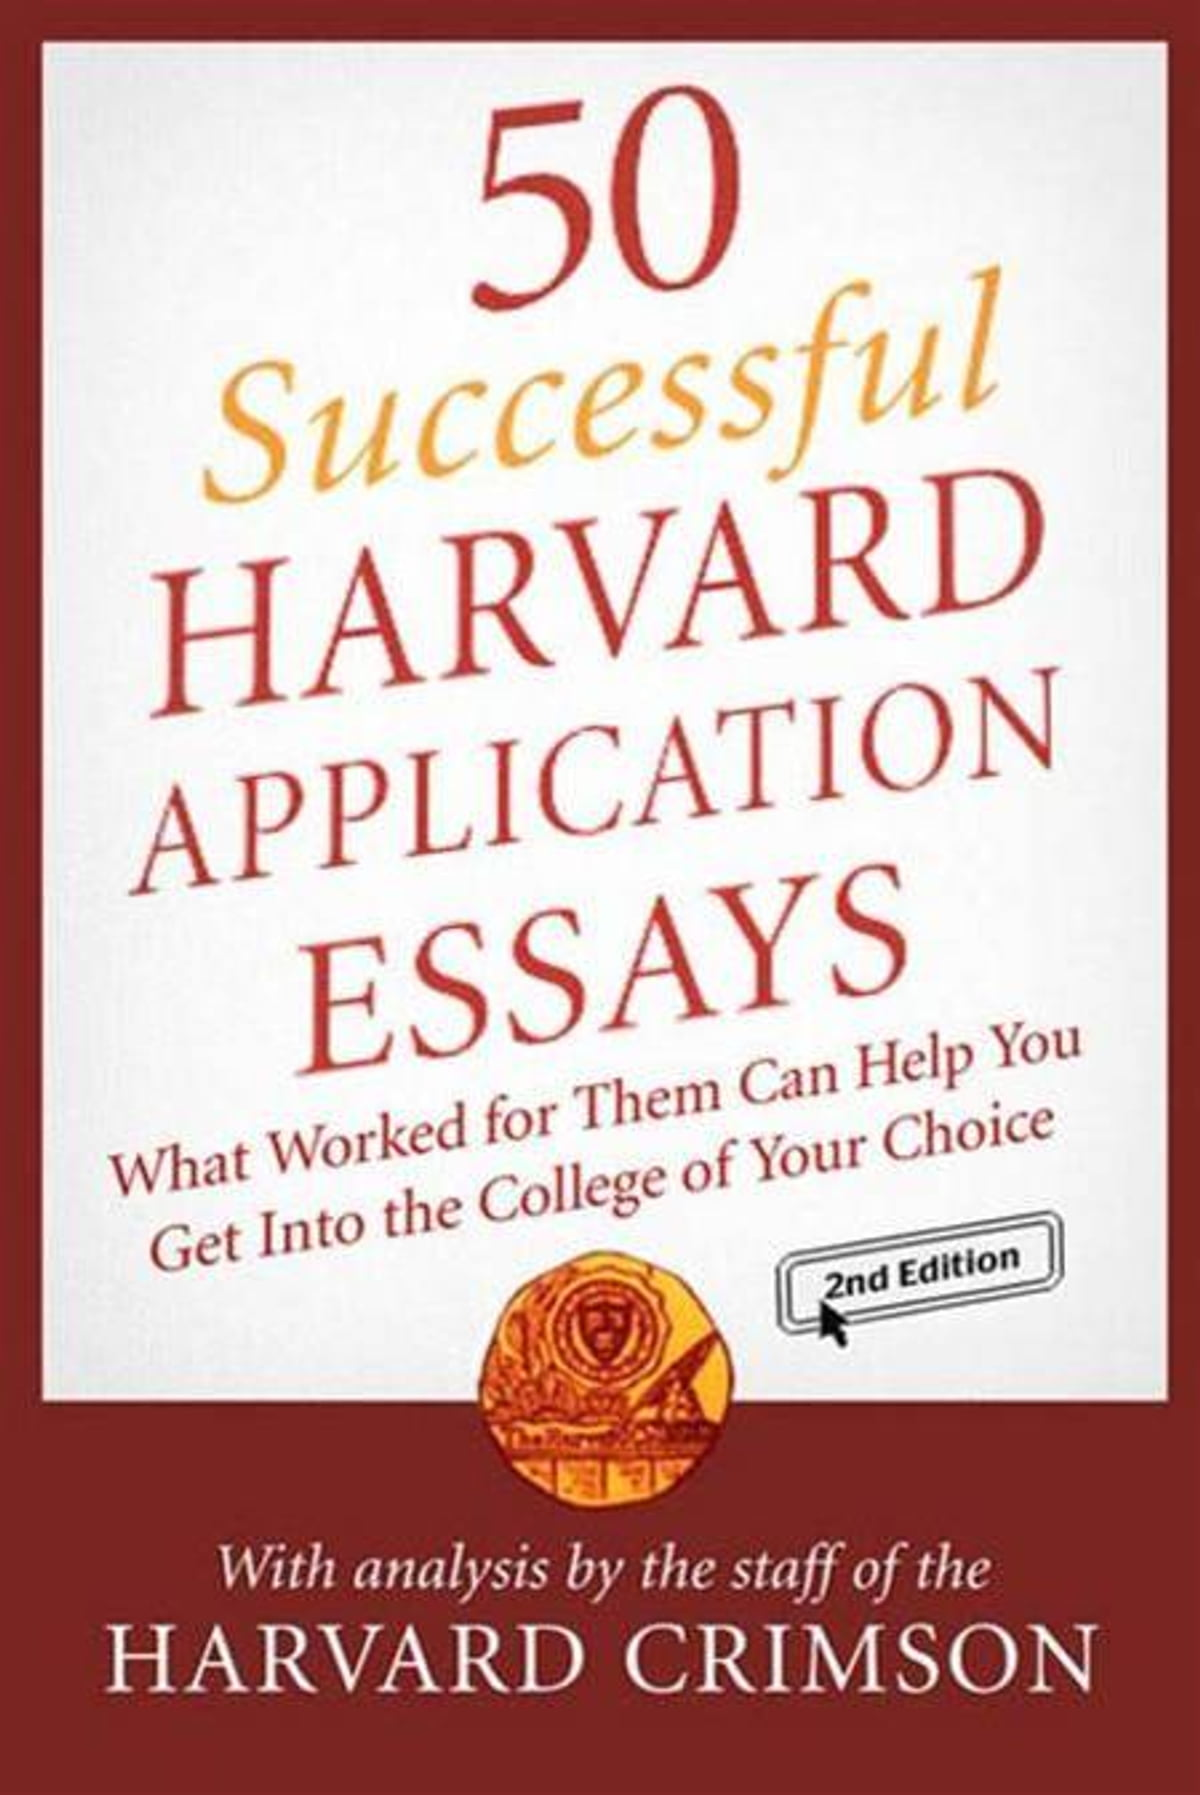 successful harvard application essays pdf successful harvard application essays pdf nmctoastmasters successful harvard application essays pdf nmctoastmasters